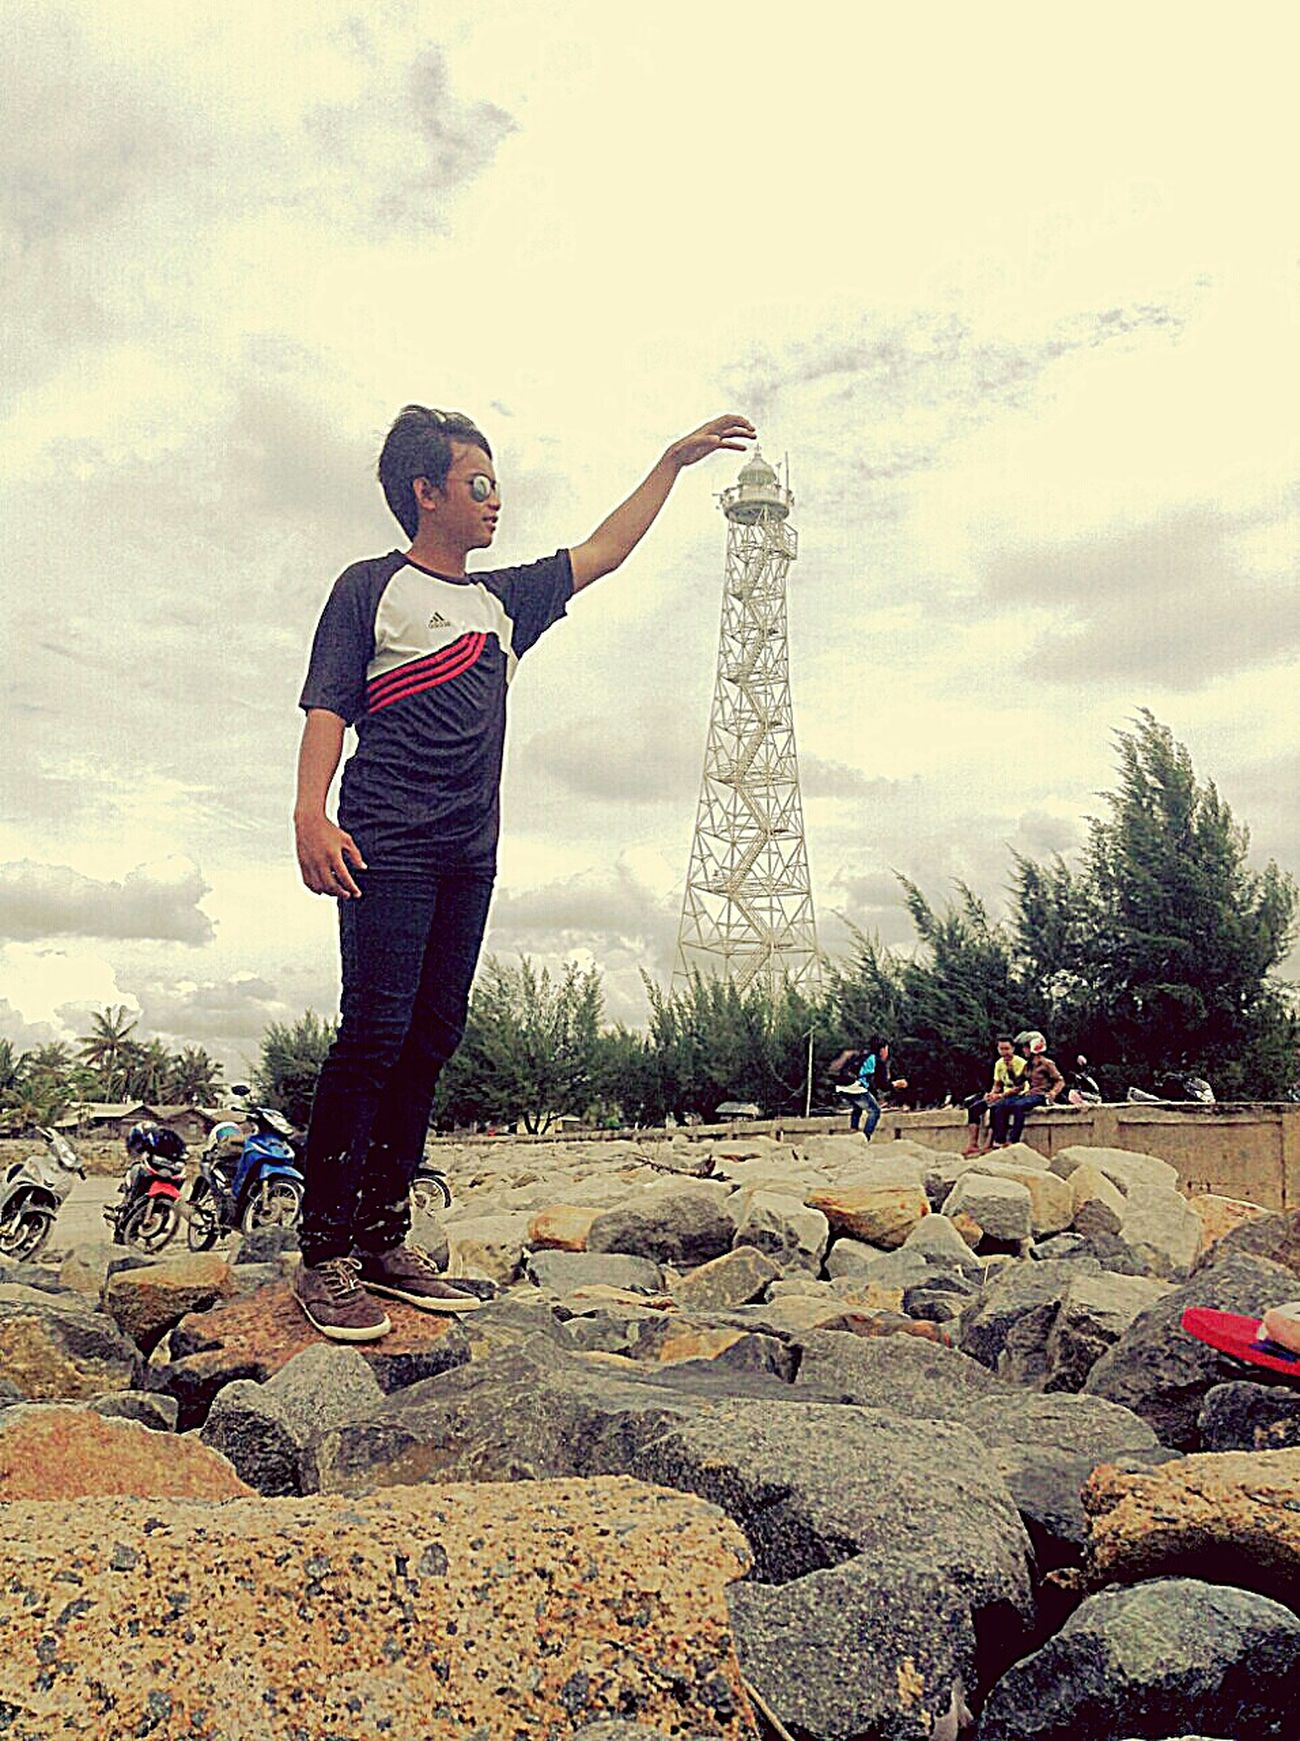 Giant Mercusuar Rupatisland Rupatselatan Bengkalis Riau INDONESIA Eyeemindonesia Beach Nature Hanging Out